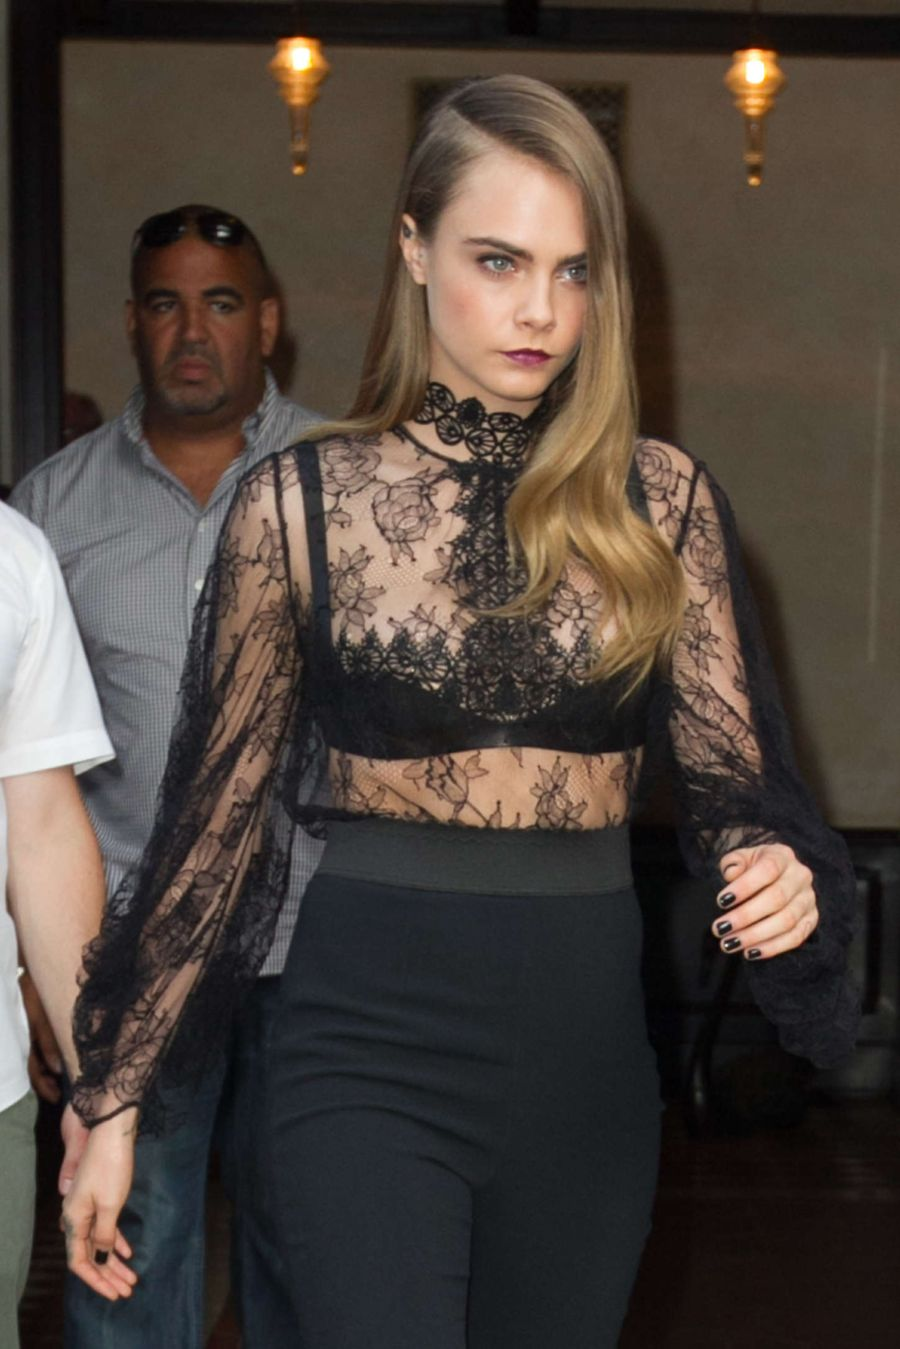 Cara Delevingne - Leaving her NY Hotel in Hot Black Top